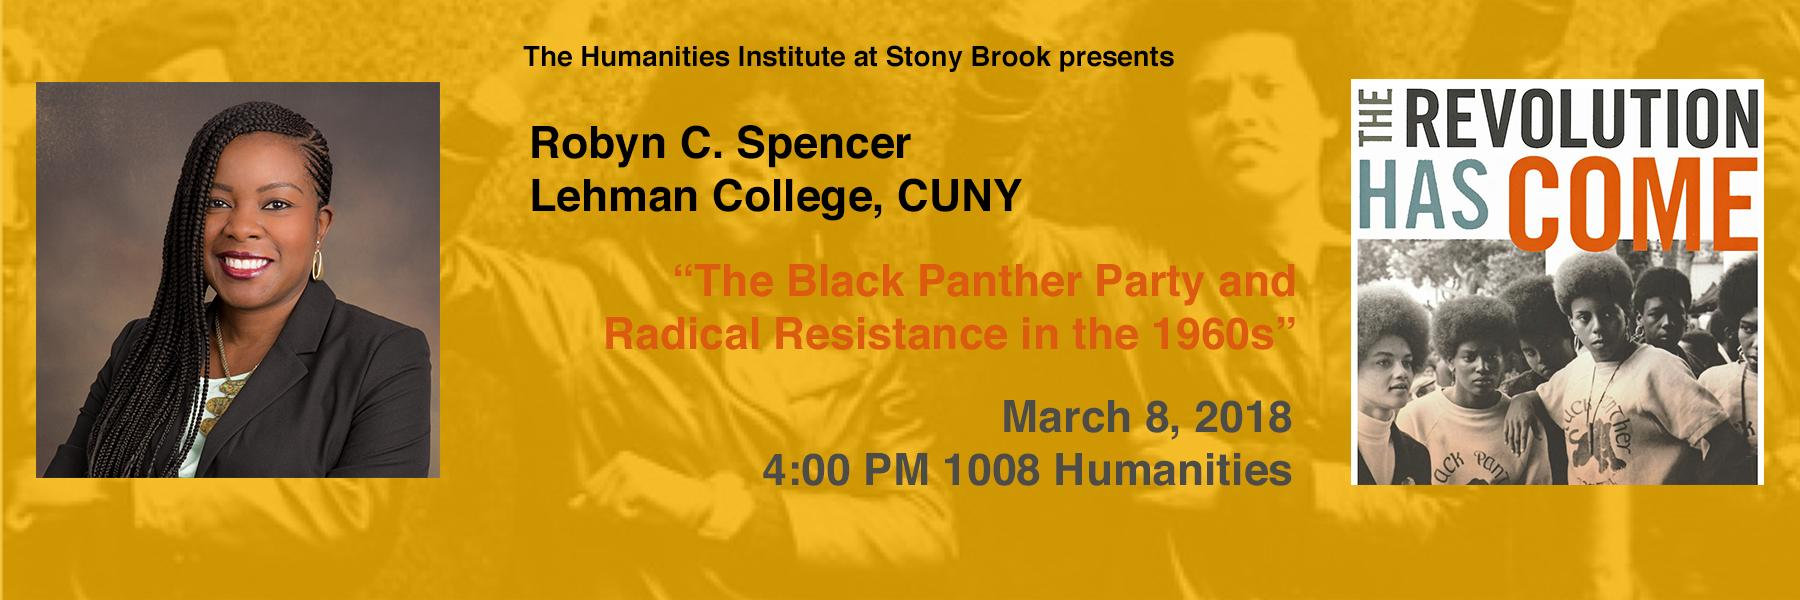 Robyn Spencer lecture